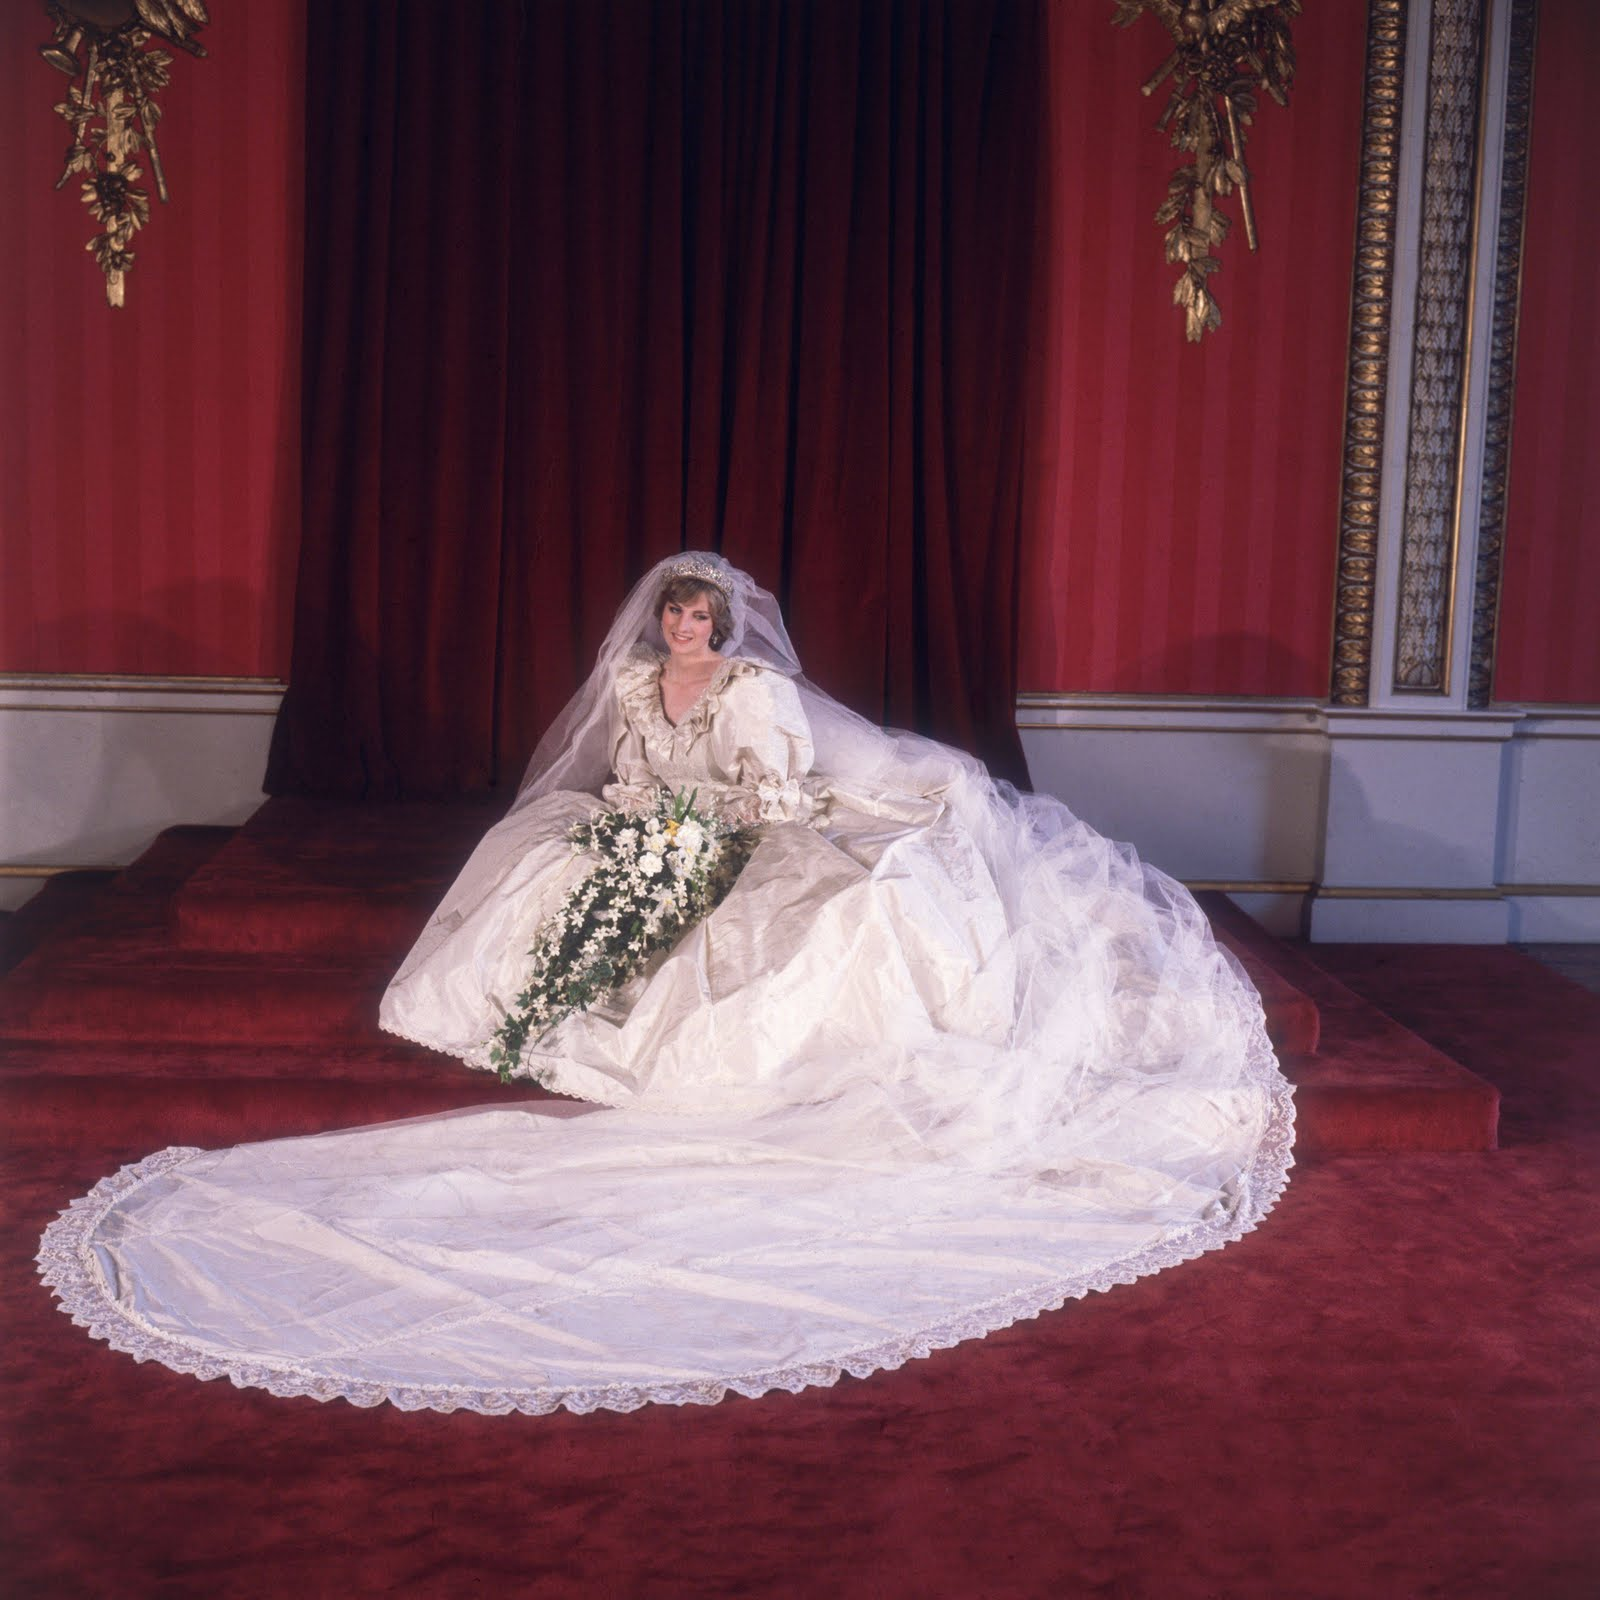 http://4.bp.blogspot.com/-Y8IGD8_bCEc/Tkf0tIwaTuI/AAAAAAAAD4M/_1Ck2TqeUUs/s1600/1981-Princess-Diana-wedding-dress-3239308.jpg